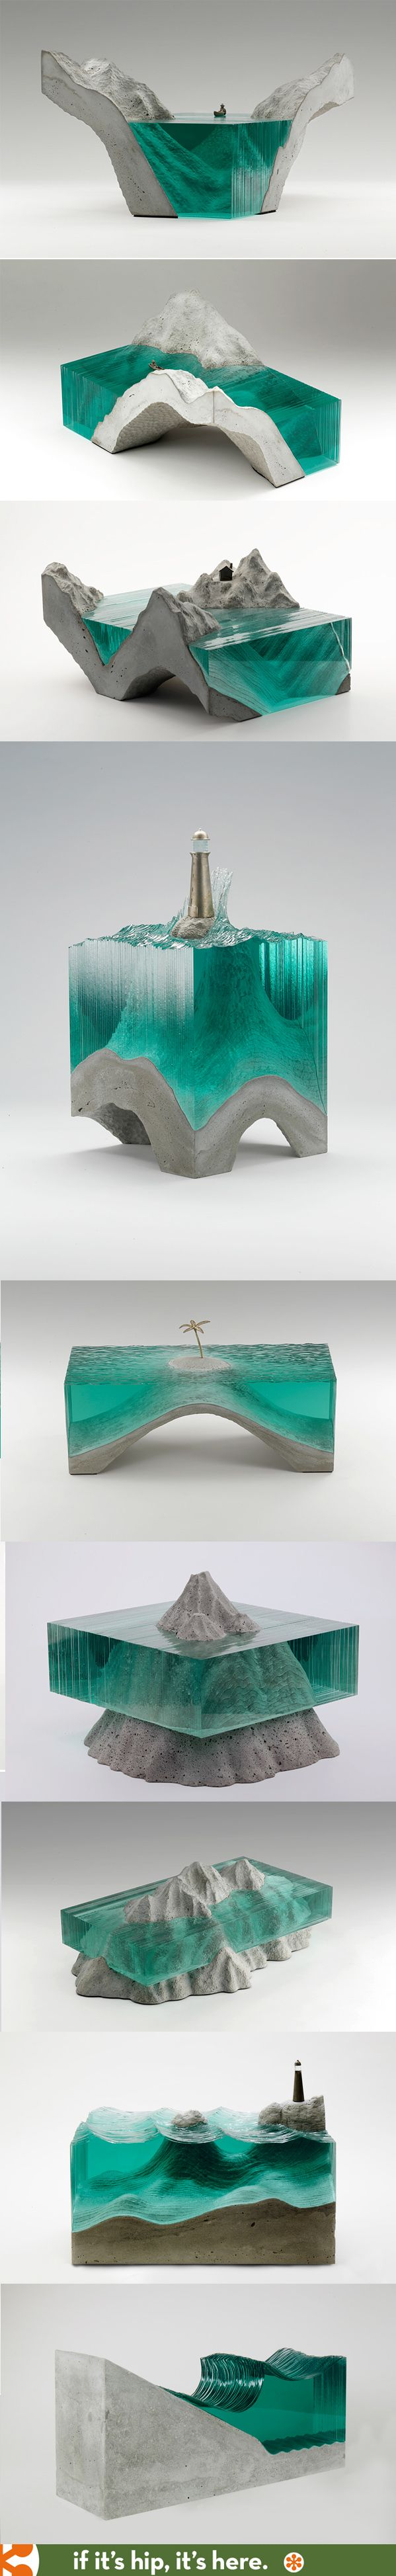 glass and concrete sculptures by Ben Young